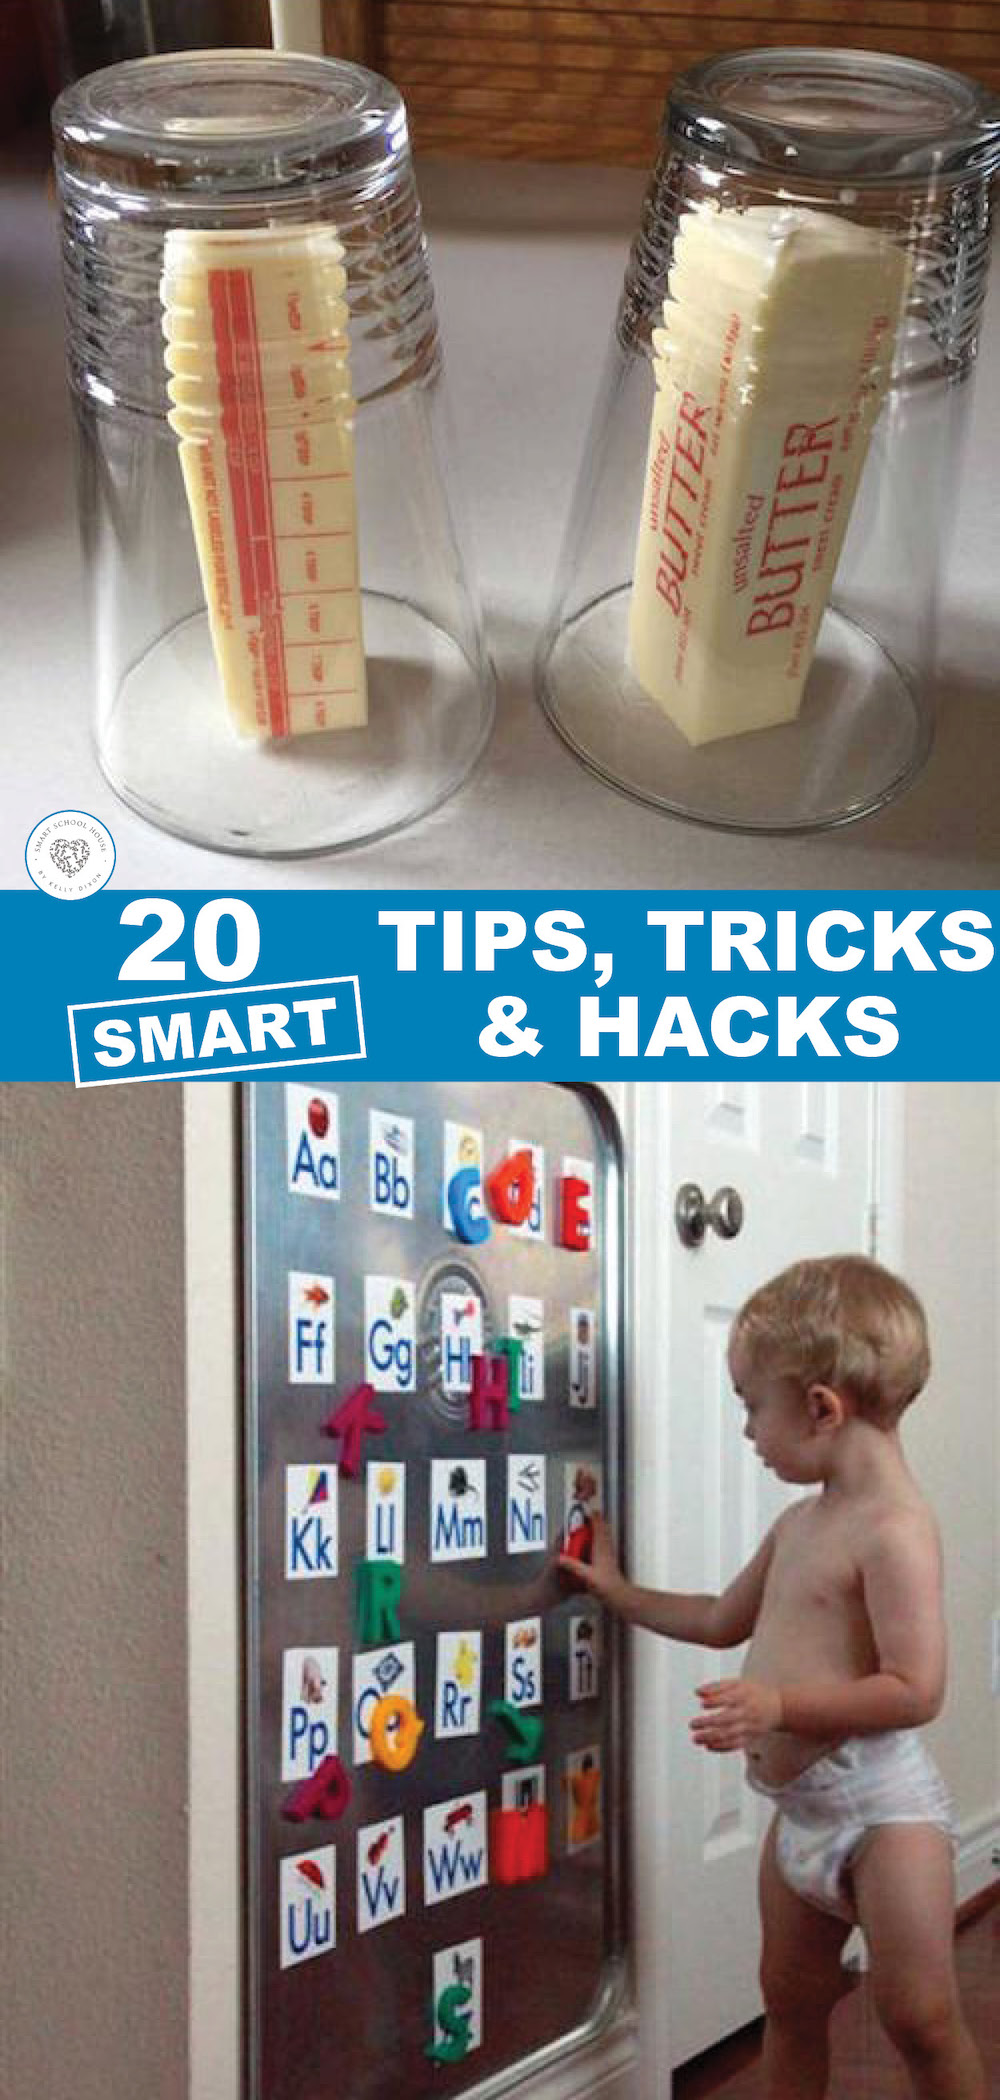 Smart Hacks, Tips and Tricks